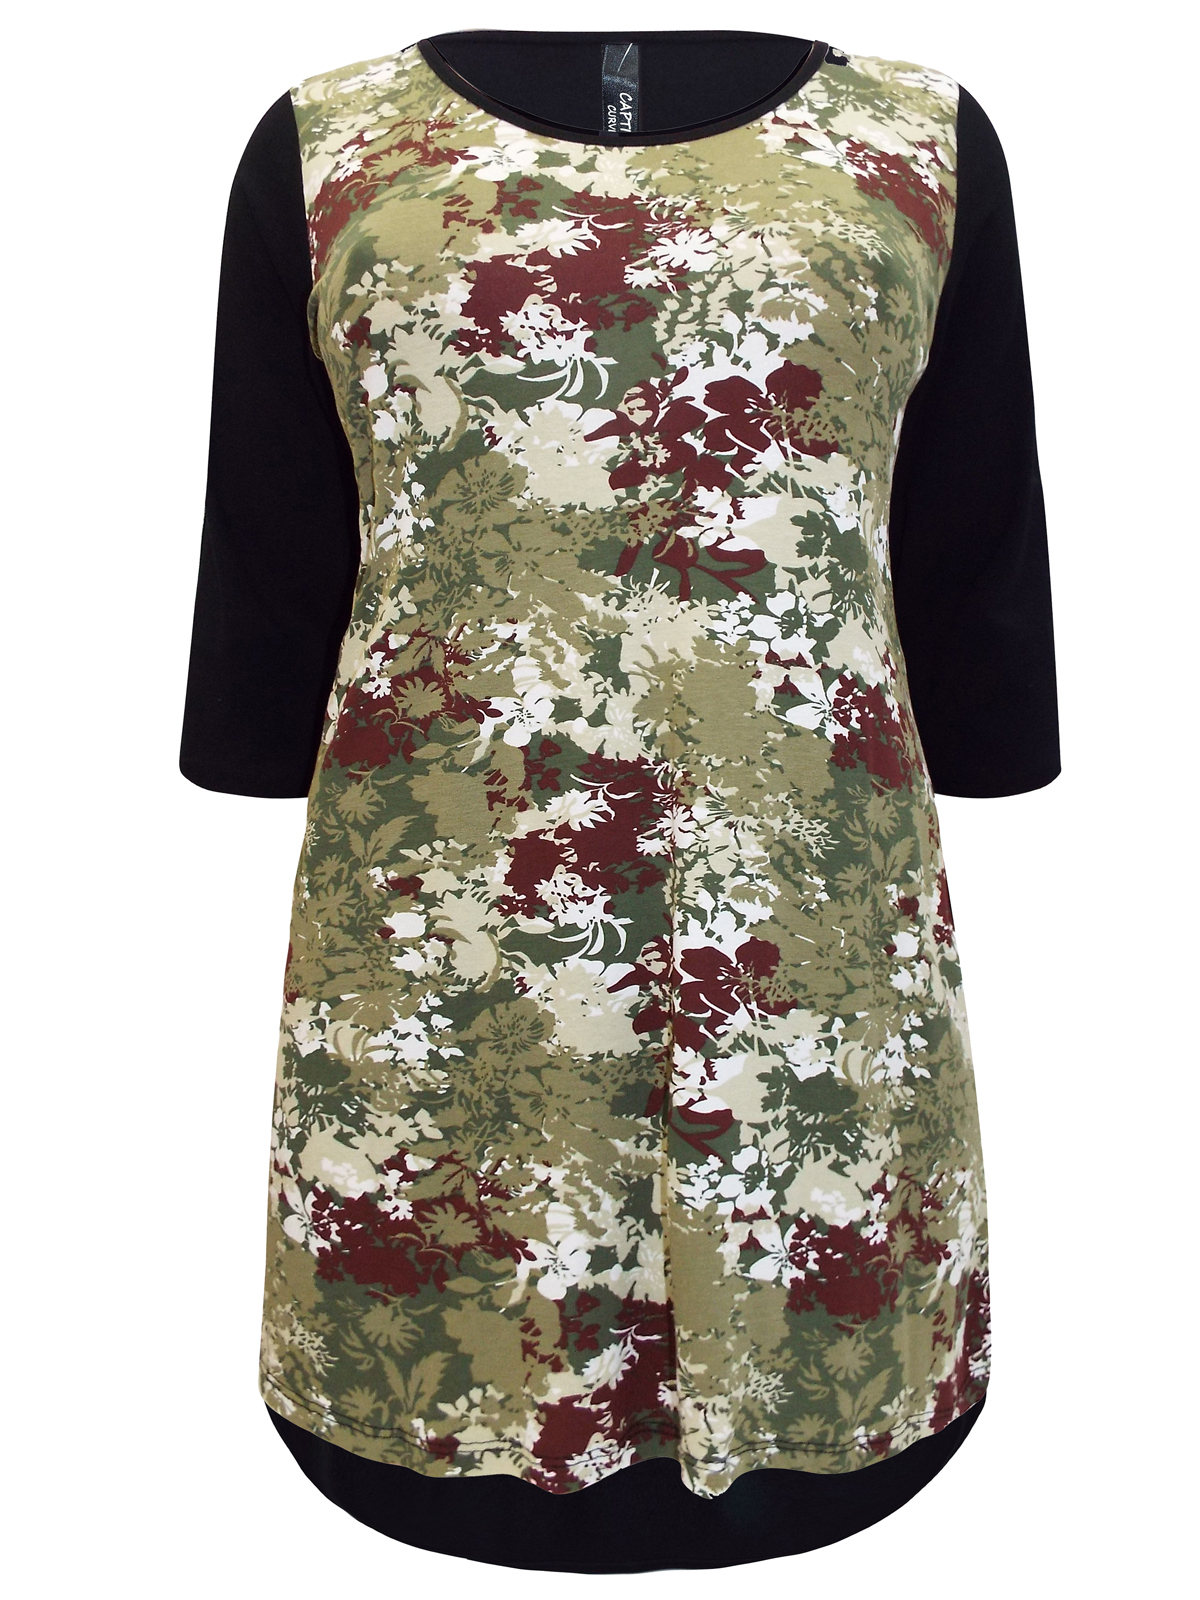 Captive Curve Black/Green Floral Print Oblong Hem Tunic - Plus Size 16 to 30/32